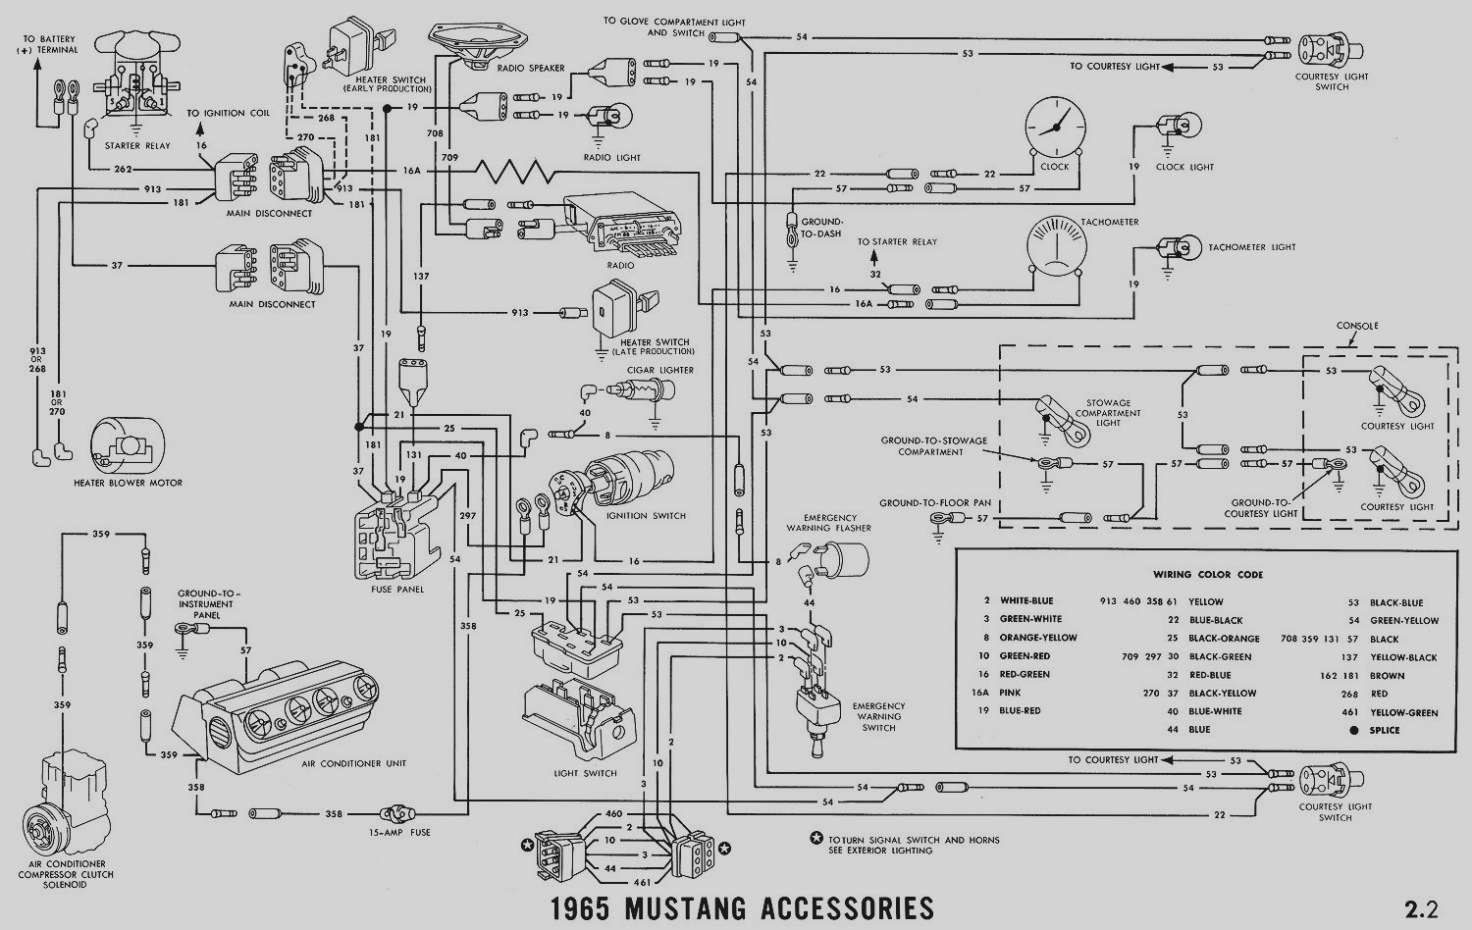 1965 ford mustang wiring diagram Collection-Gallery 1965 Mustang Wiring Diagram Diagrams Average Joe Restoration 7-p